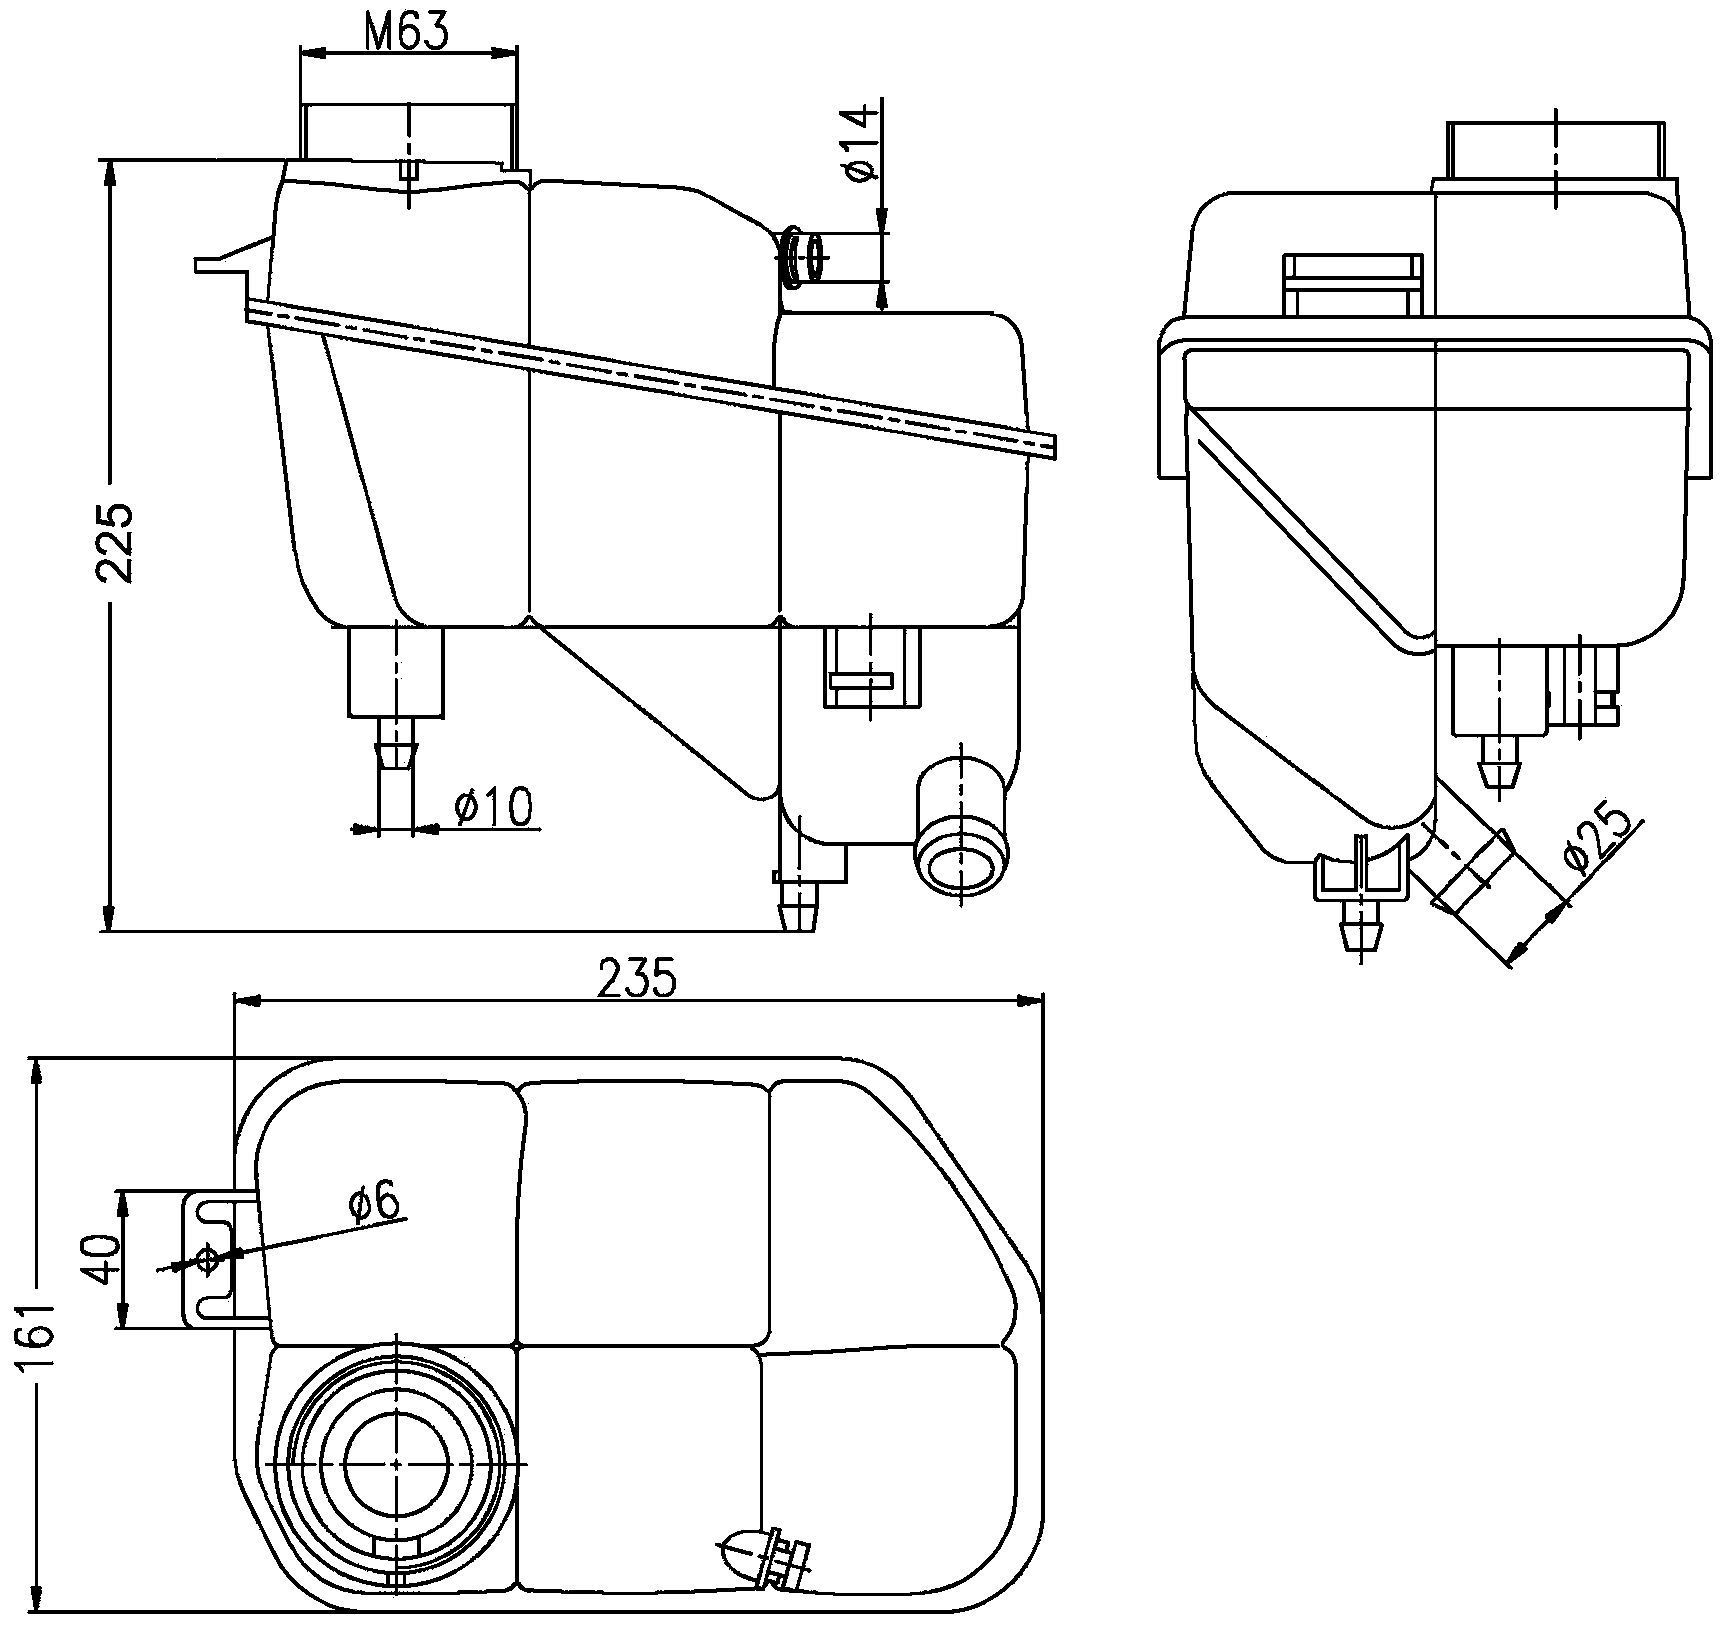 WRG-7799] Mercedes Benz 2003 E320 Engine Diagram